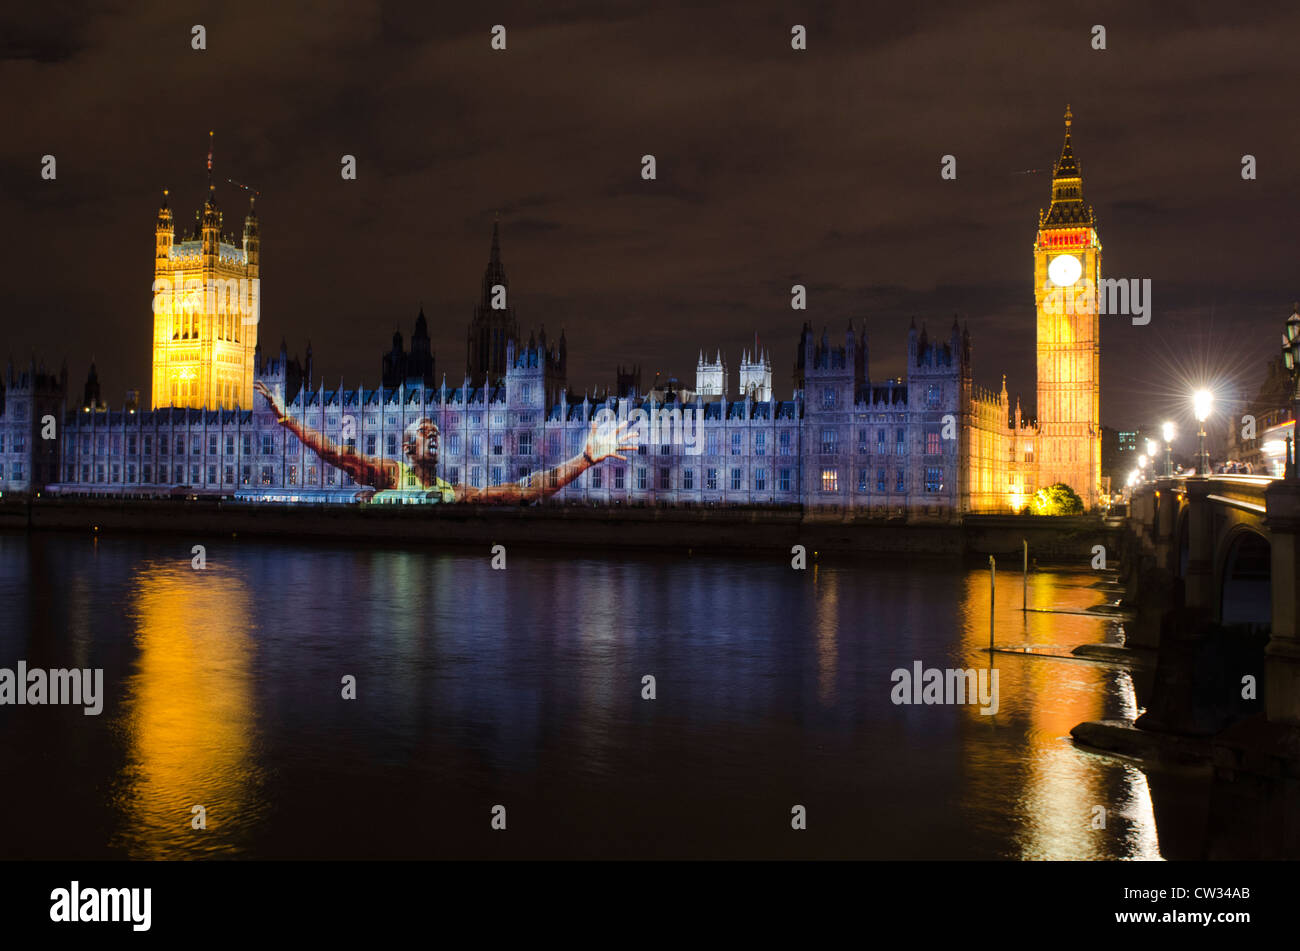 Houses of Parliament at night with London Olympics 2012 projection of Usain Bolt Jamaican athlete - Stock Image